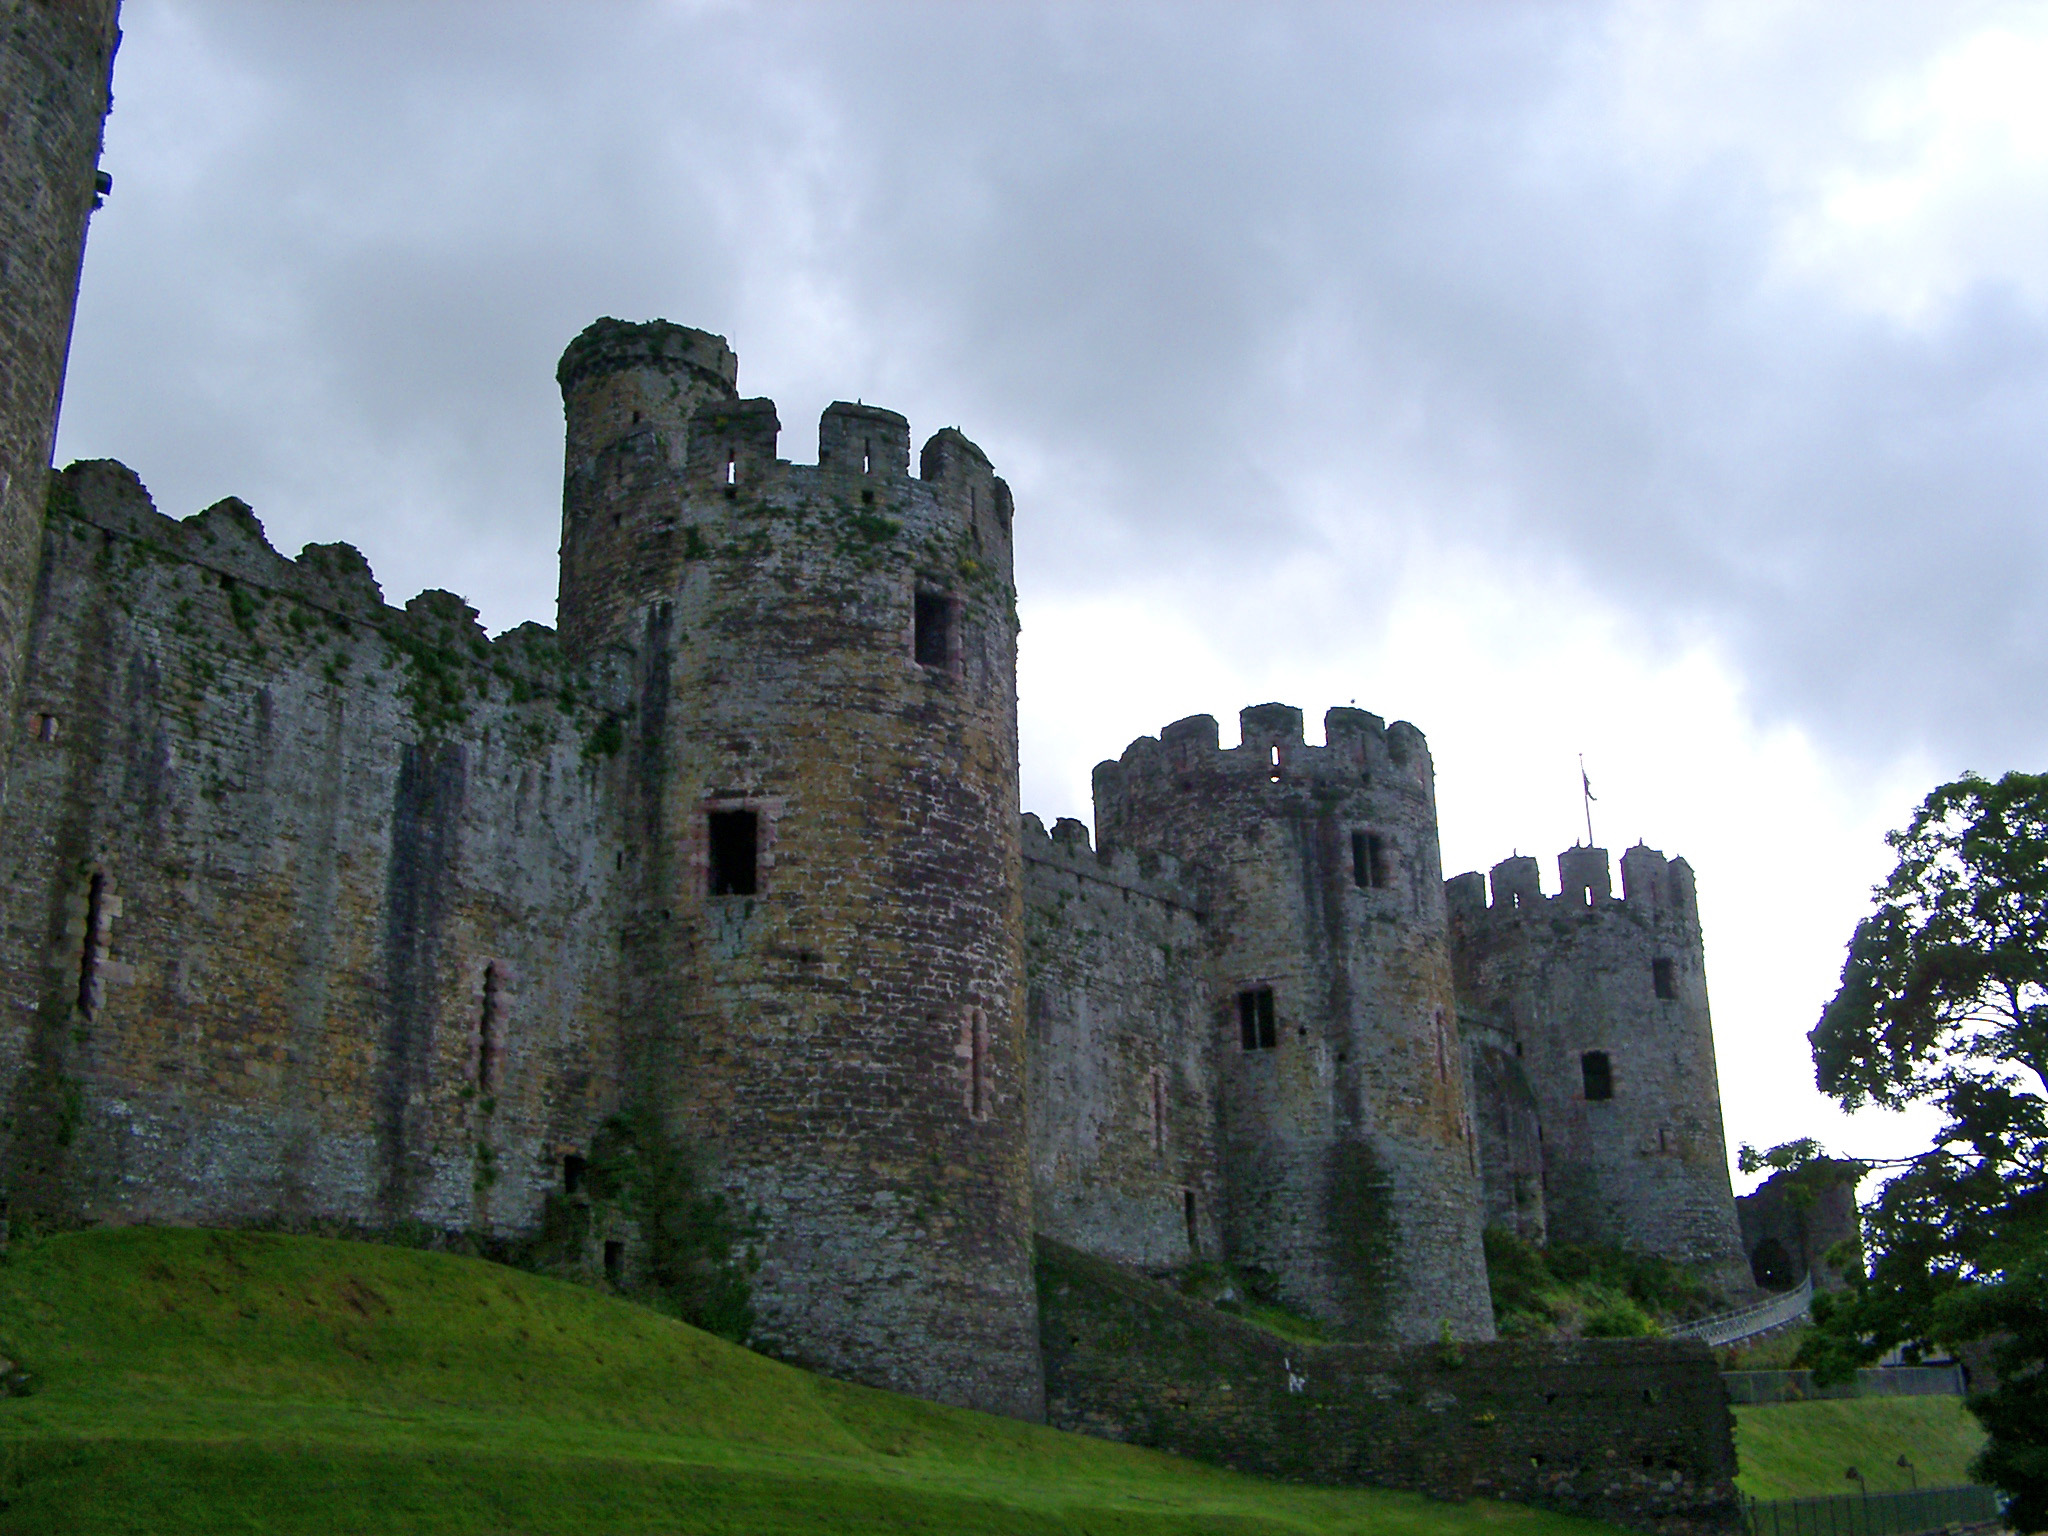 Conway, Wales, UK, walled medieval town with a view of the castellated ramparts and circular stone towers